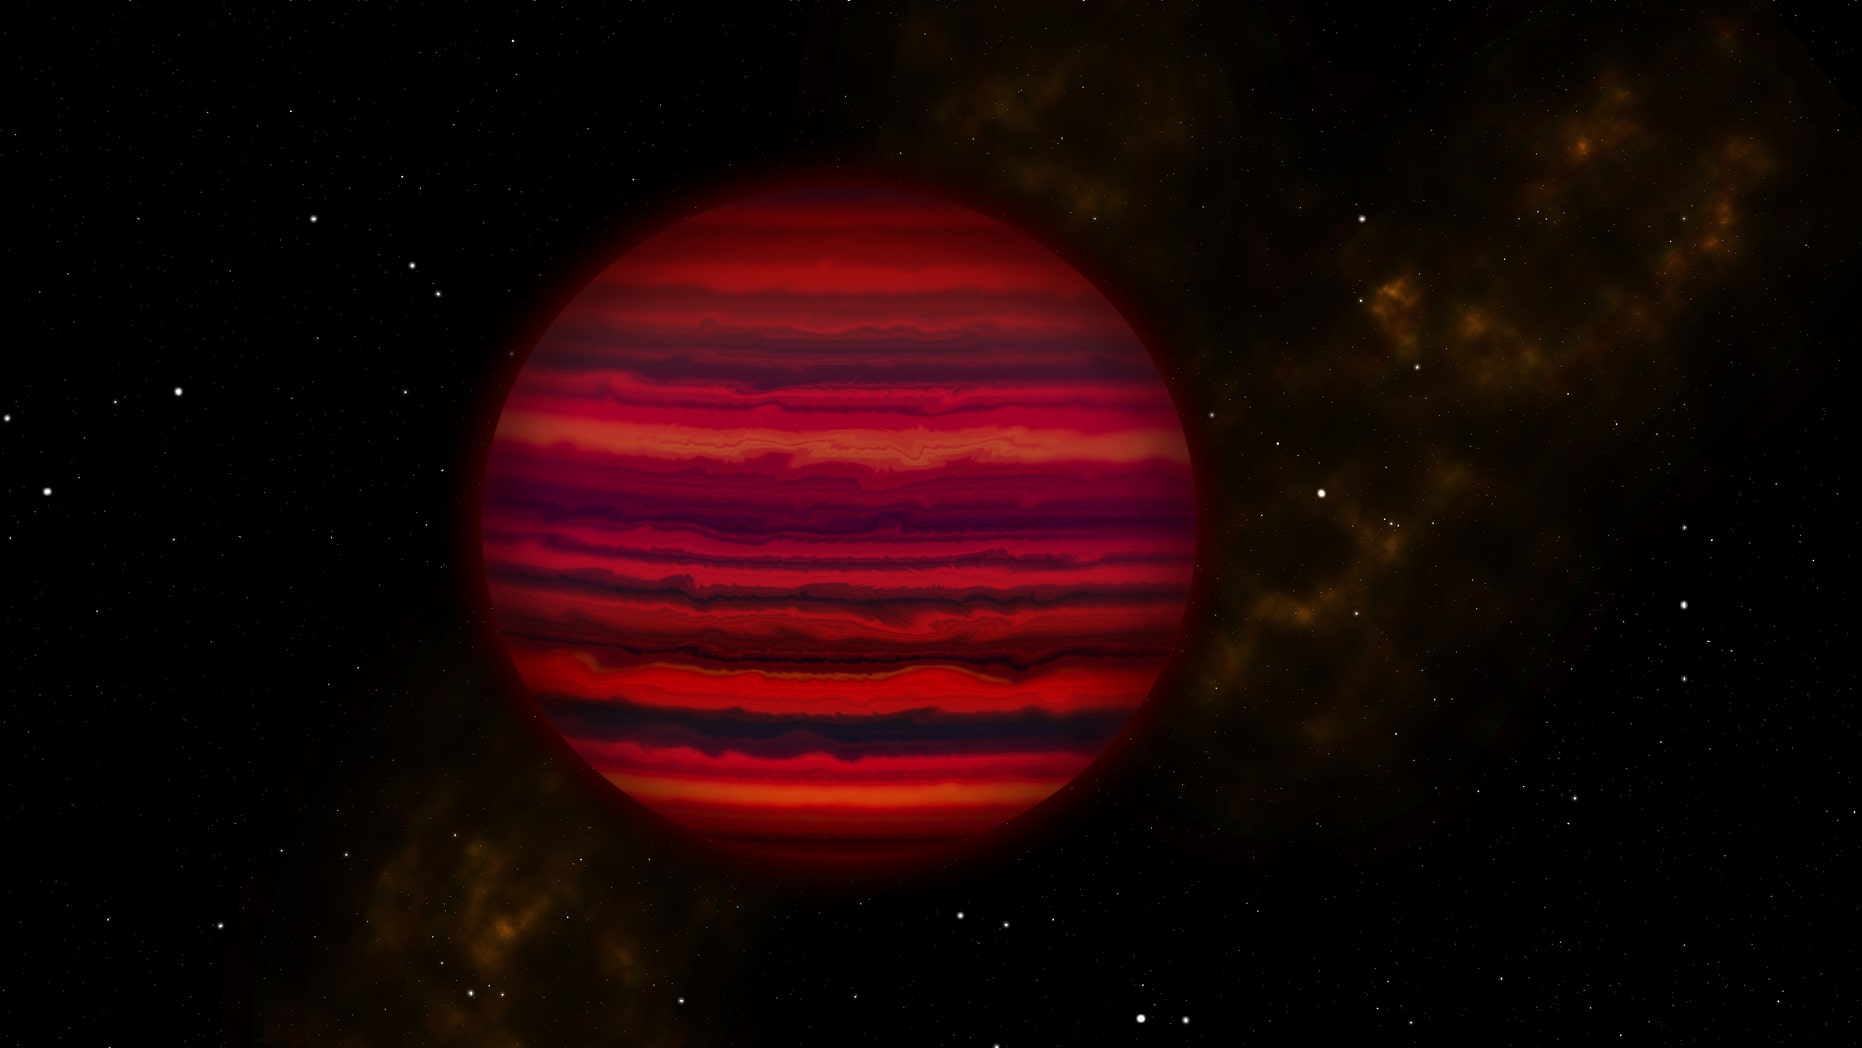 Artist's illustration of how the nearby brown dwarf WISE 0855 might appear if viewed close-up in infrared light.